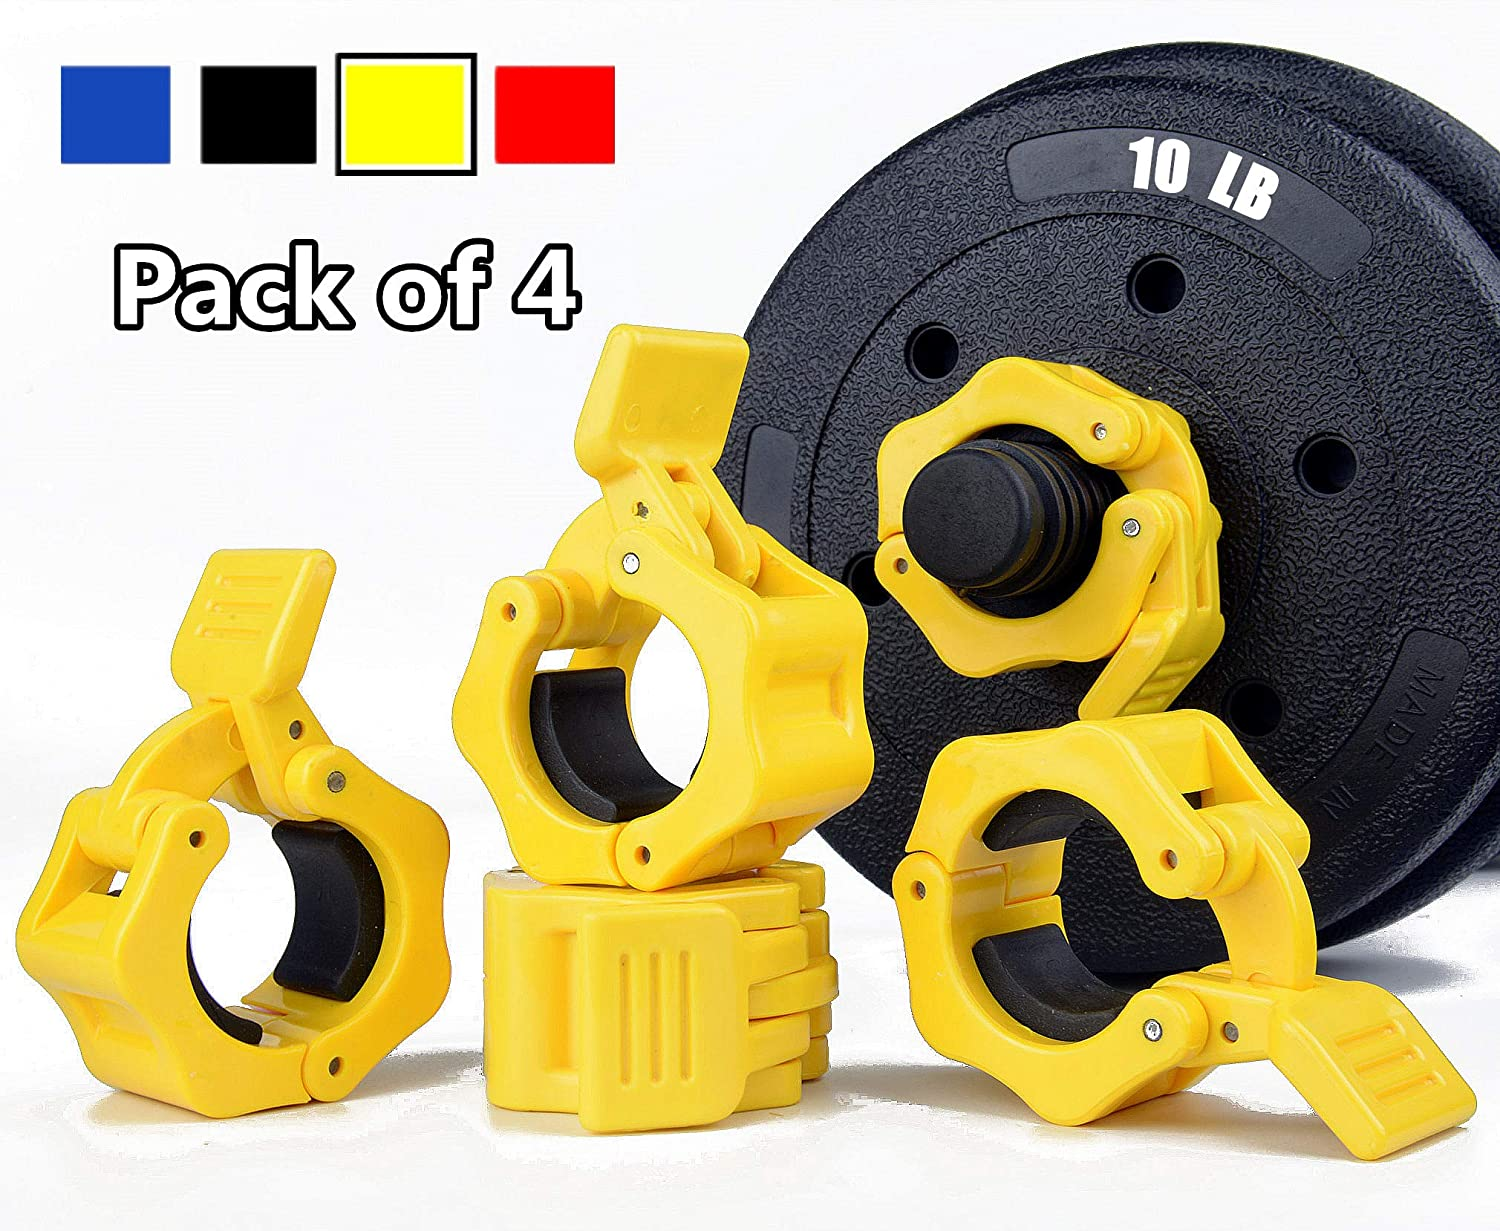 TOFEIC 1 Inch Quick Release Dumbbell Clamps 1 Standard Barbell ABS Spinlock Weights Bar Plate Lock Collars Clips Great for Women Strongman Gym Crossfit Wrokout Fitness Training